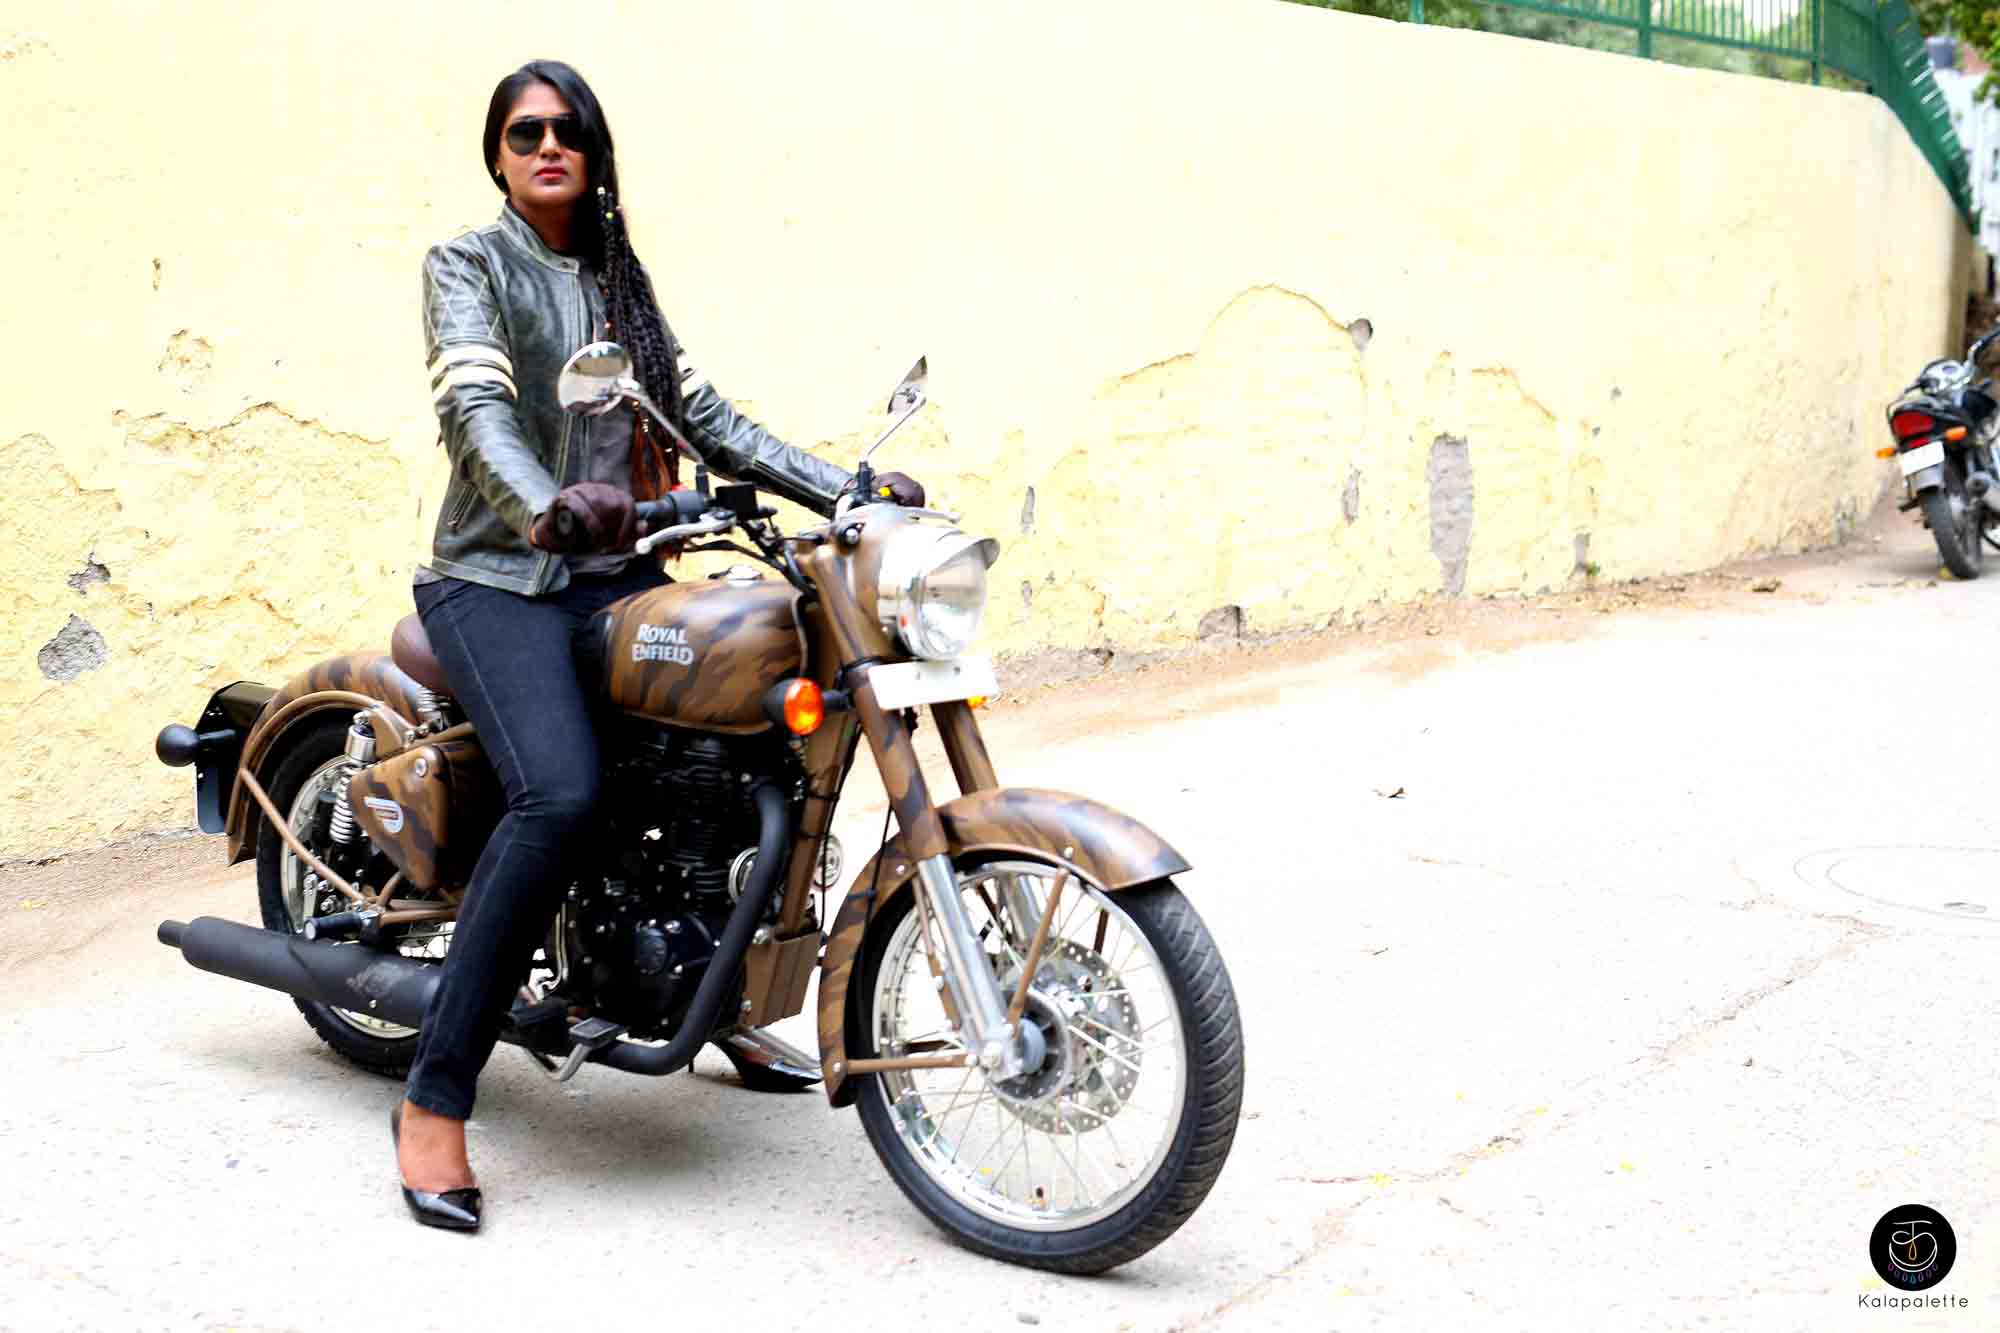 Classic Fall Wallpaper Royal Enfield Riders On The Storm Ootd Kalapalette